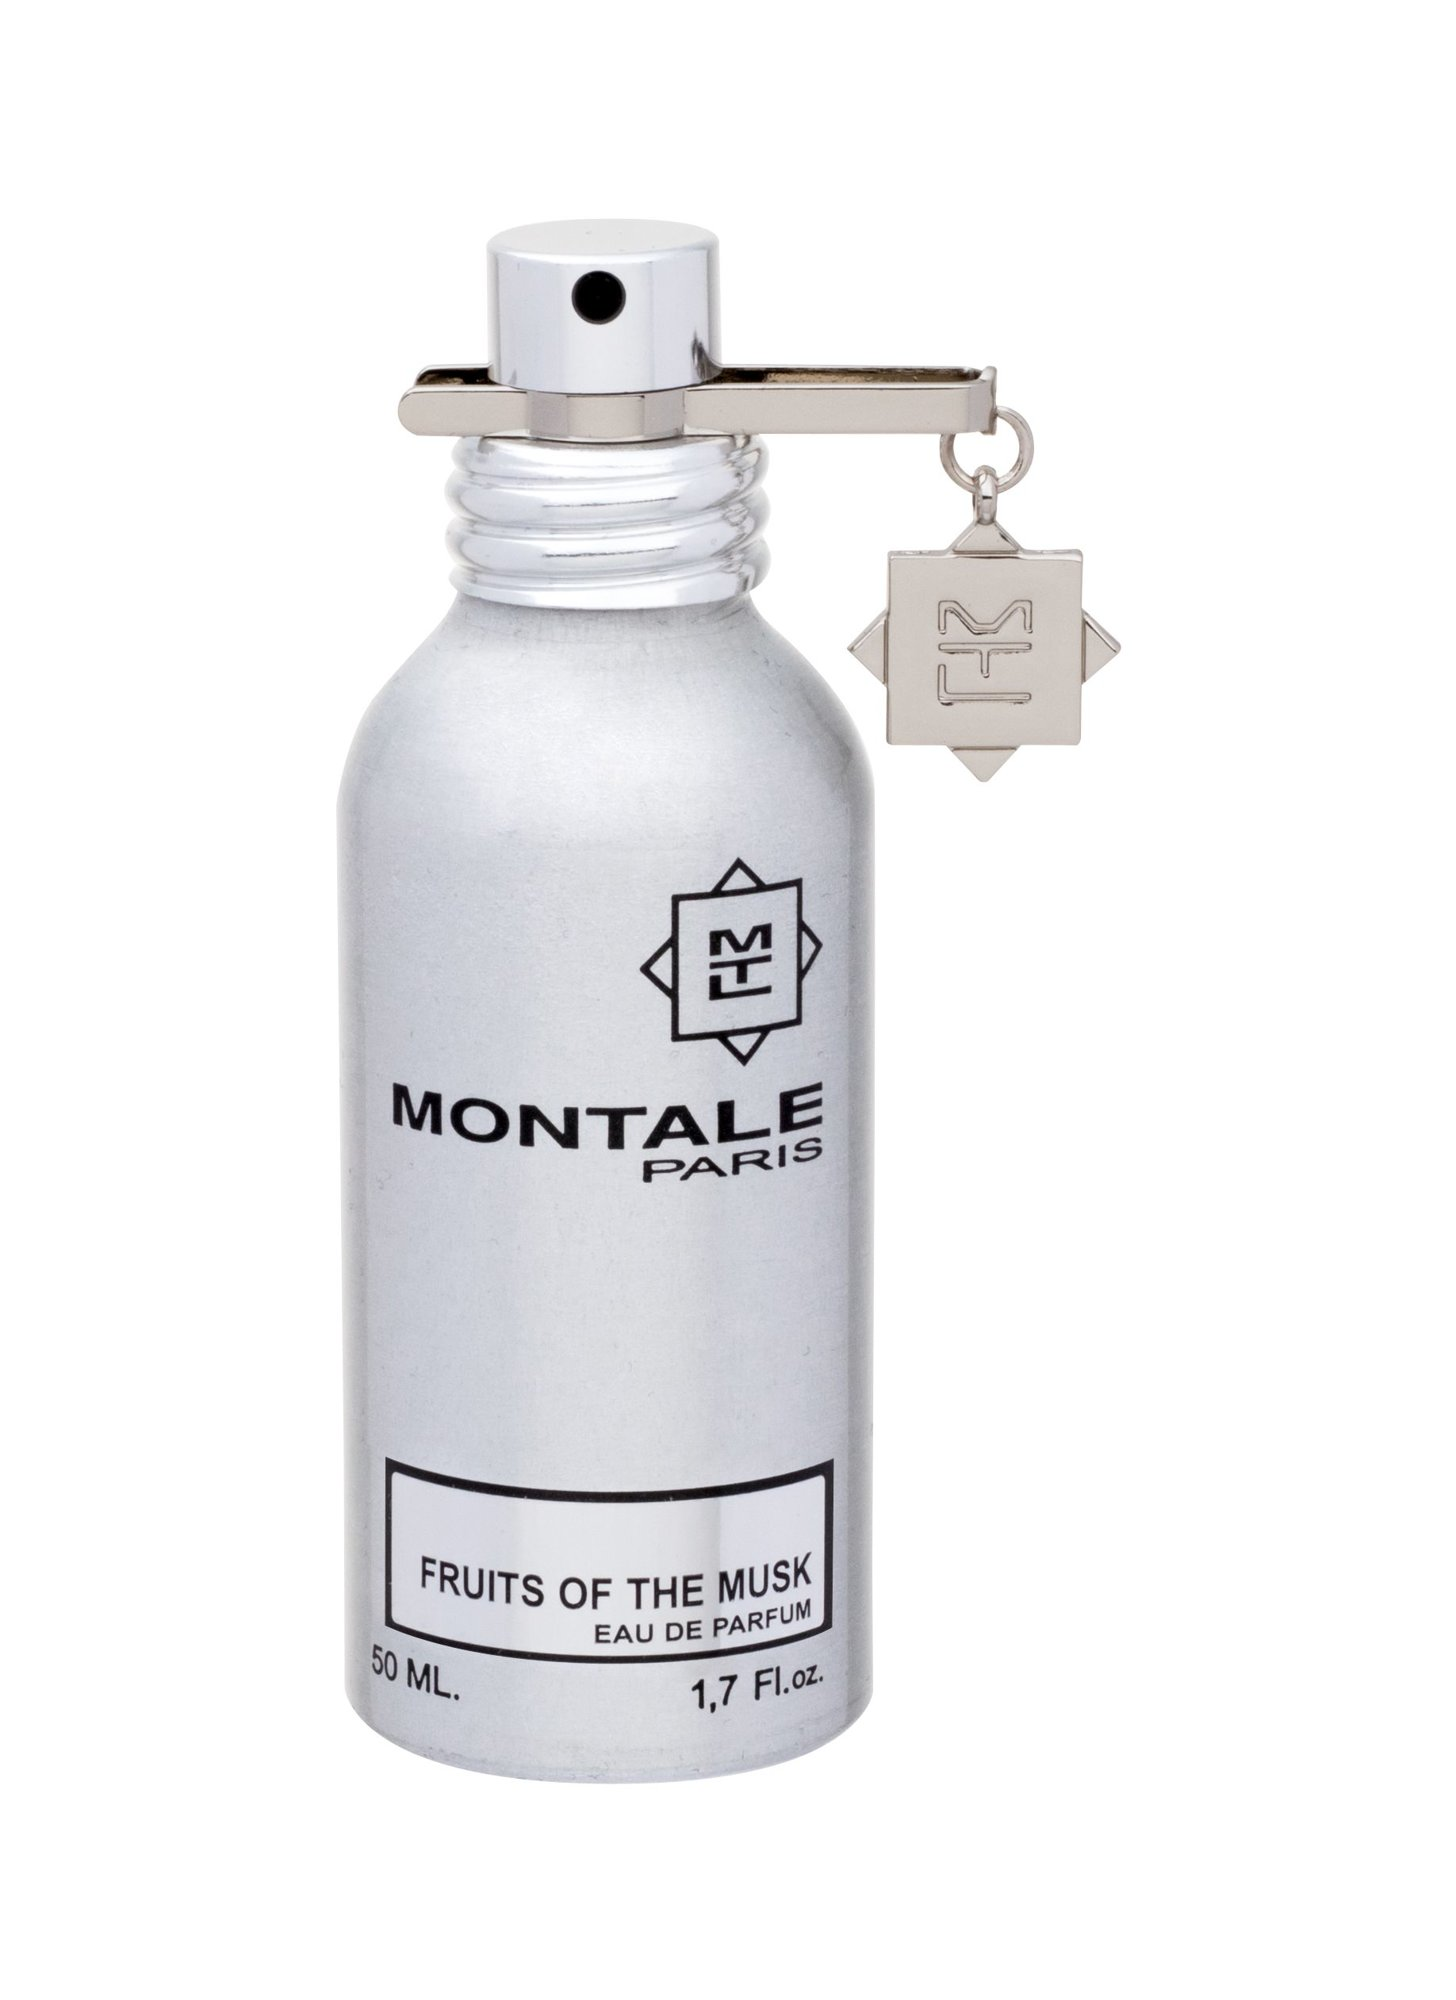 Montale Paris Fruits Of The Musk EDP 50ml